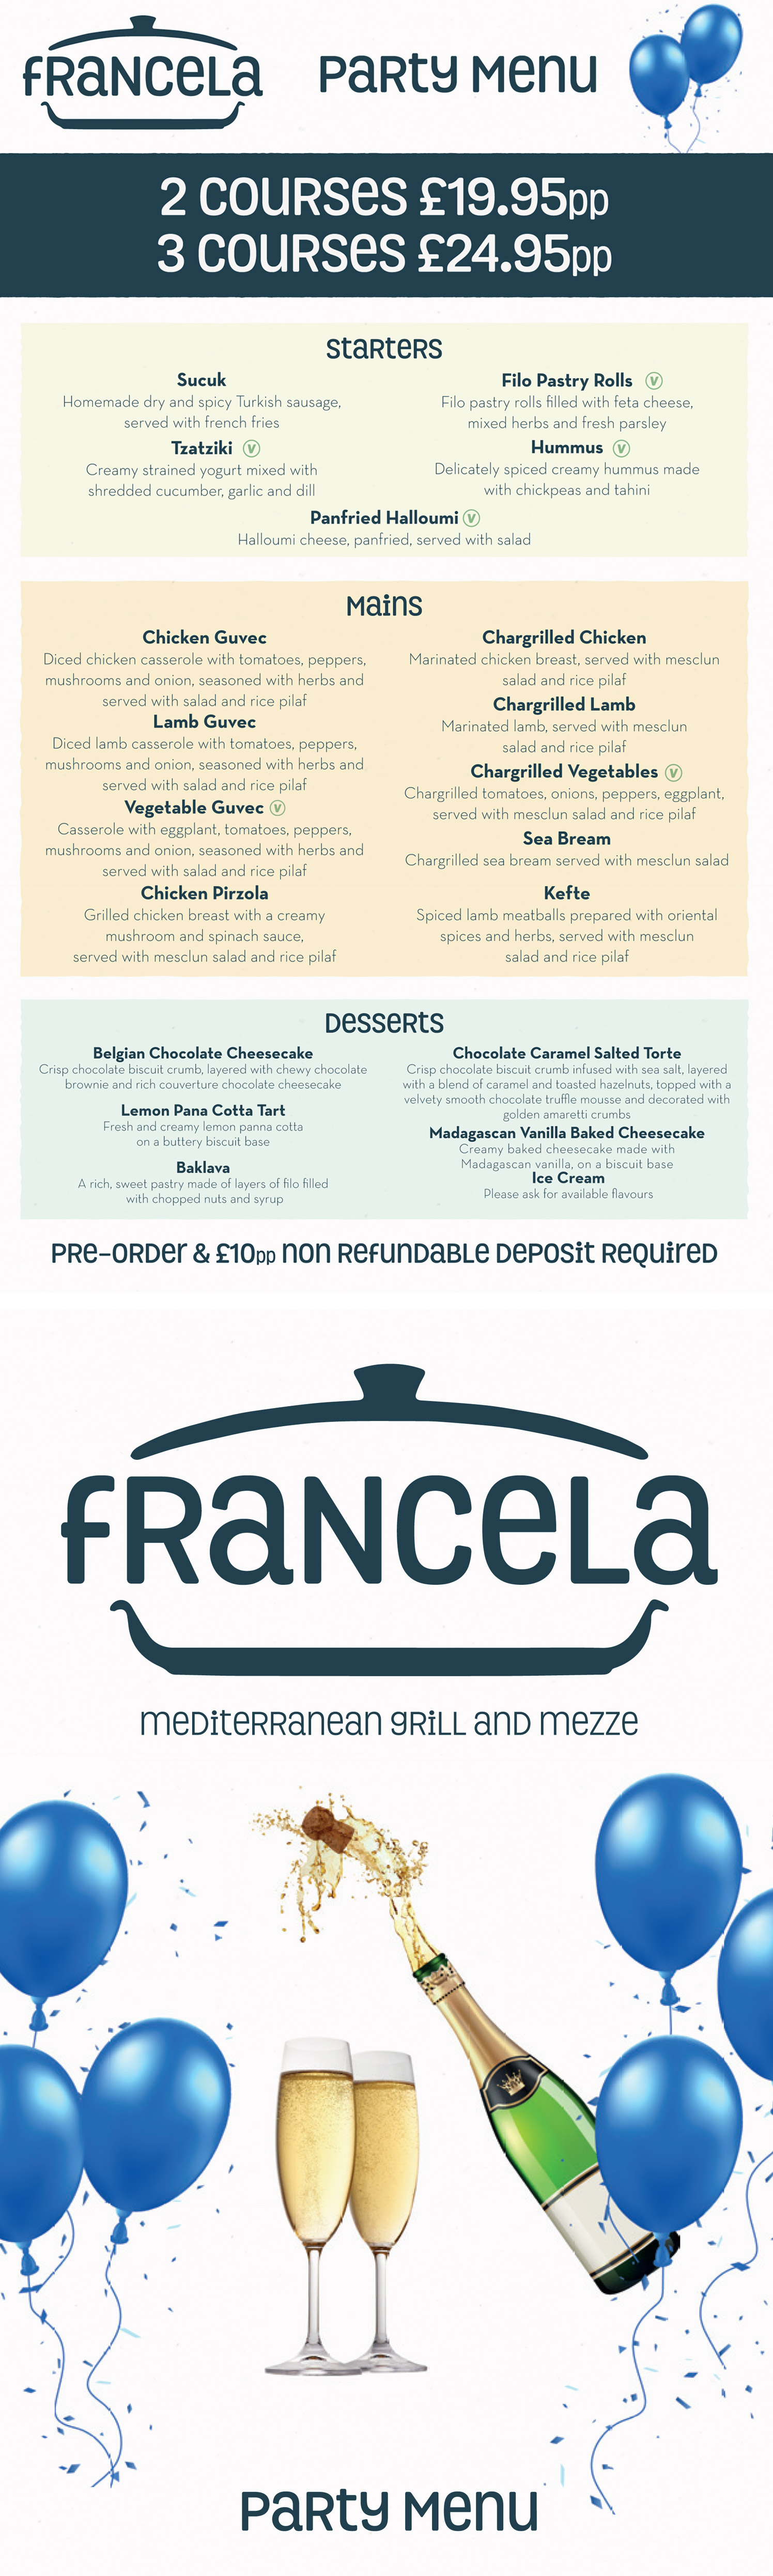 Francela Party Menu